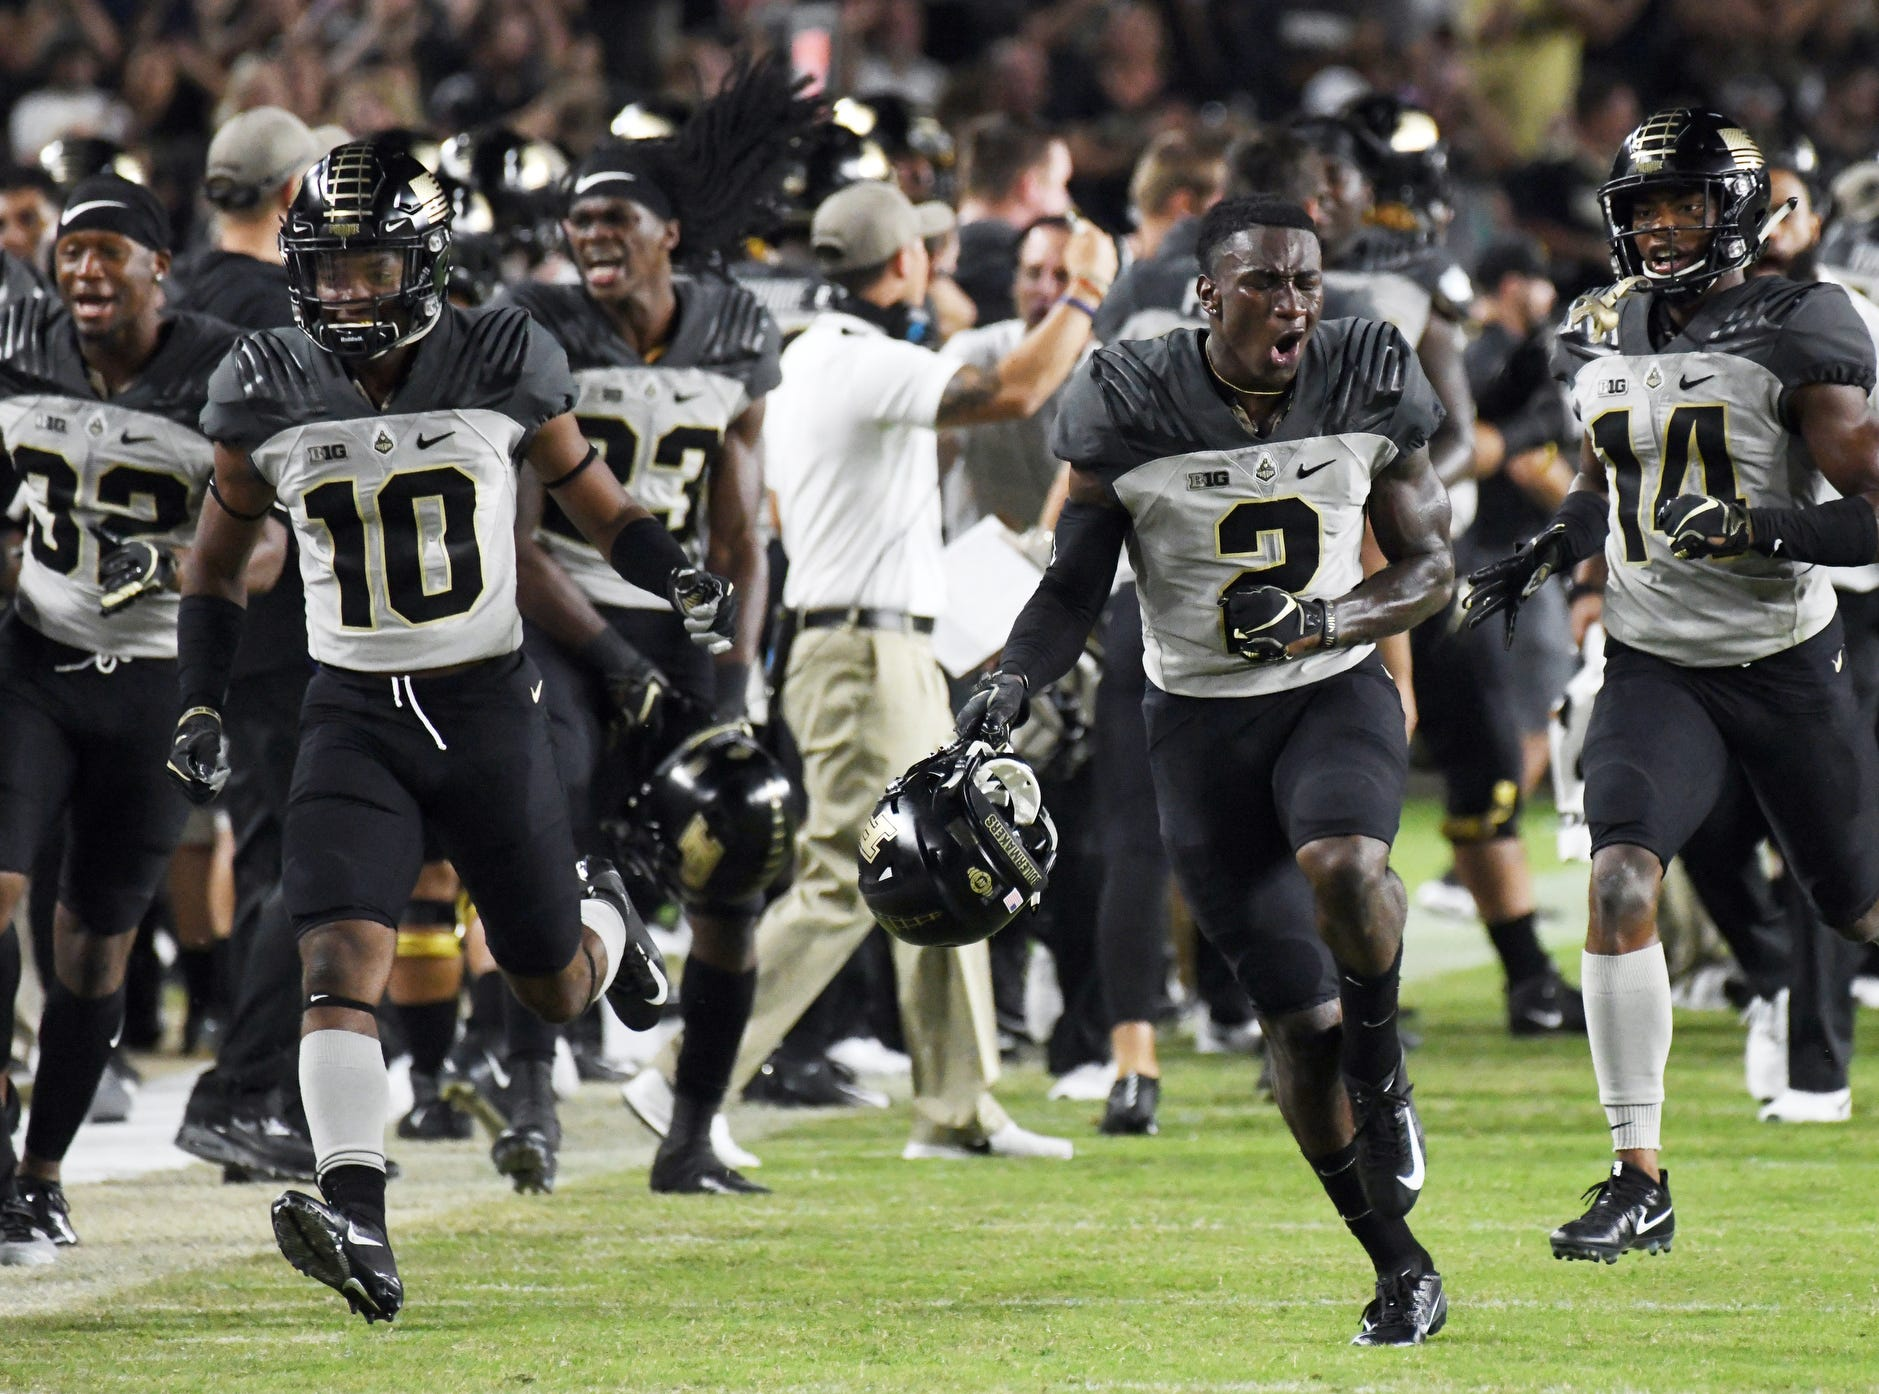 Kenneth Major (2) of Purdue reacts after intercepting a Missouri pass late in the fourth quarter Saturday, September 15, 2018, in West Lafayette. Purdue lost 40-37 on a Missouri field goal as time expired.